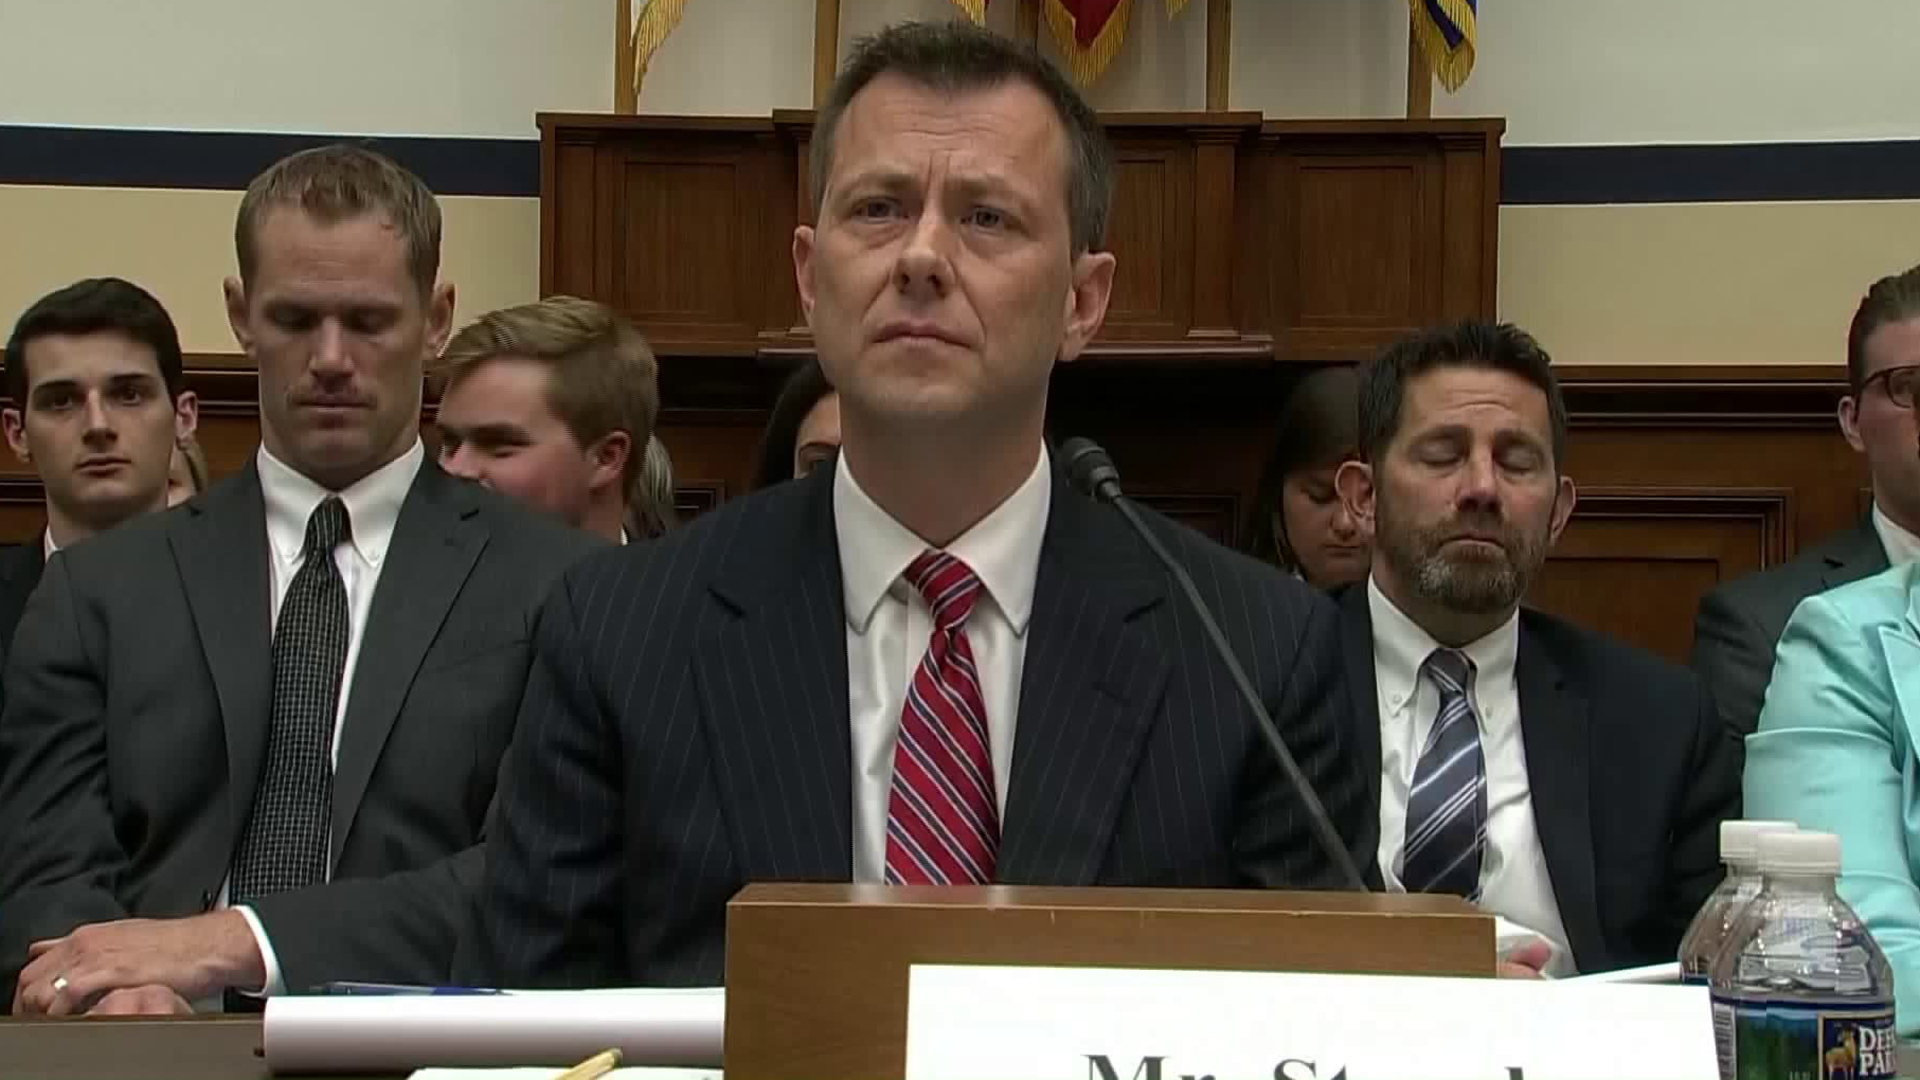 Peter Strzok testifies in front of the House Judiciary Committee on July 12, 2018. (Credit: Pool)